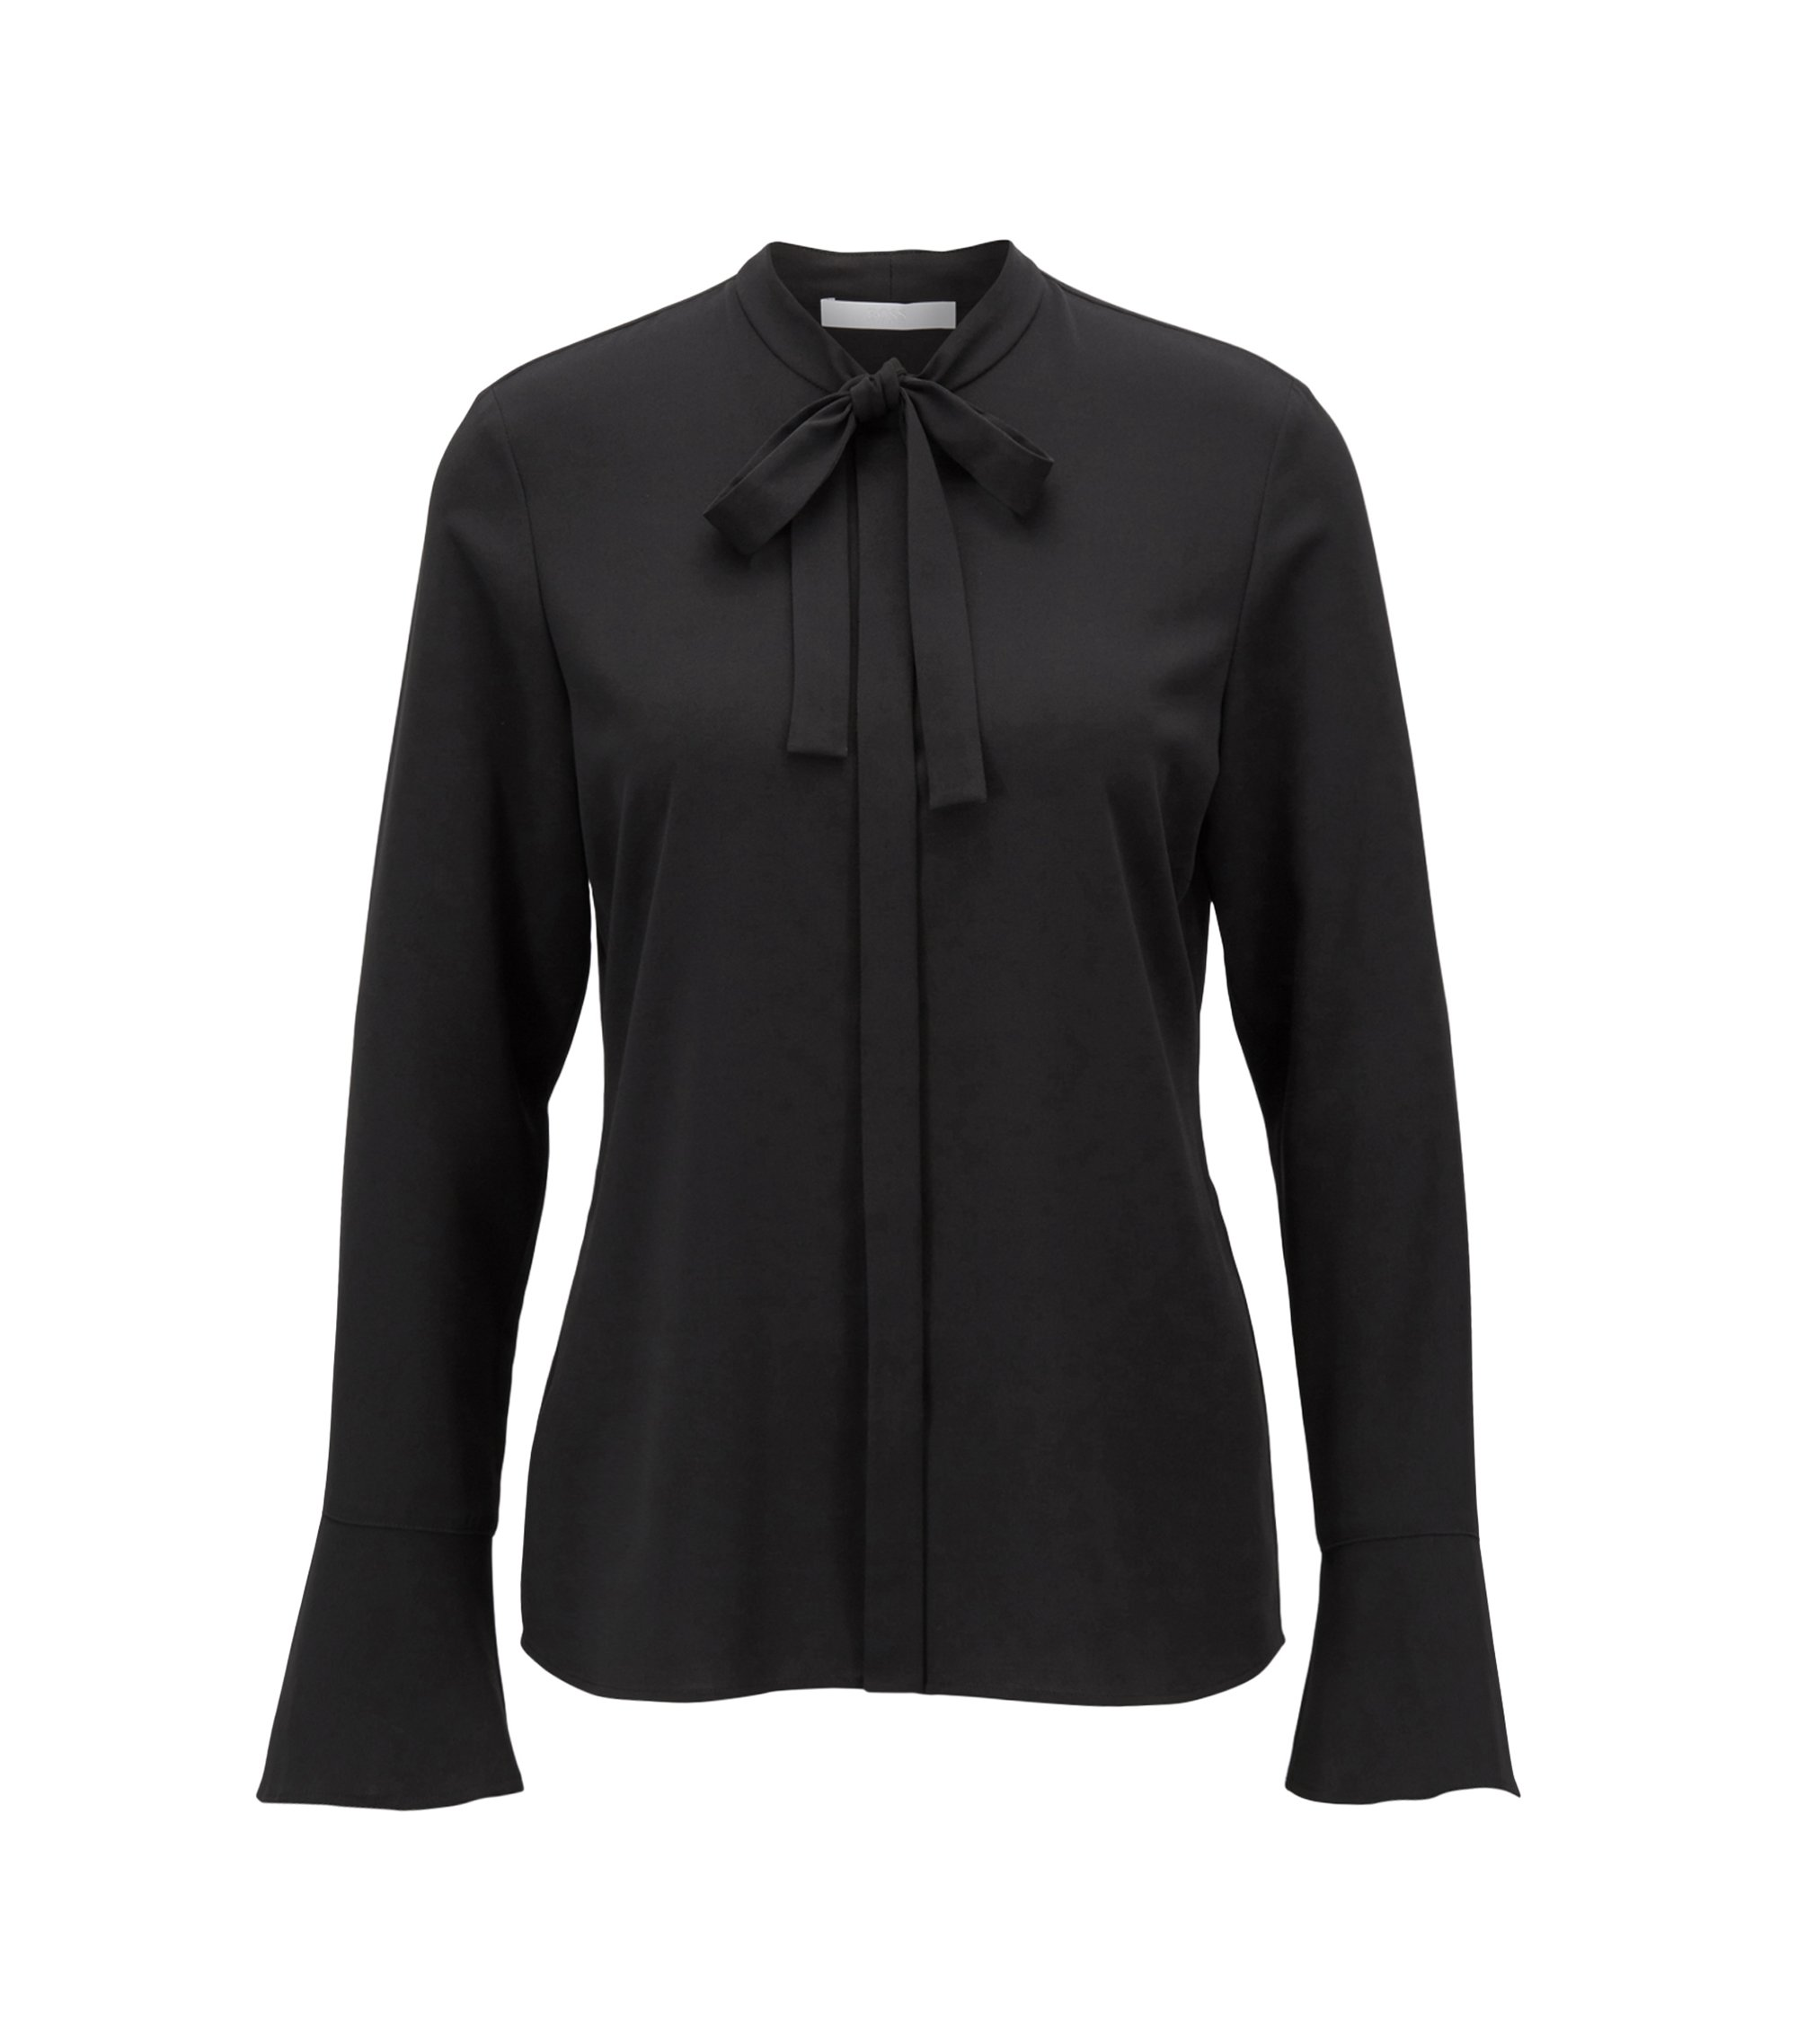 Bow-collar blouse in stretch crinkled crepe, Black